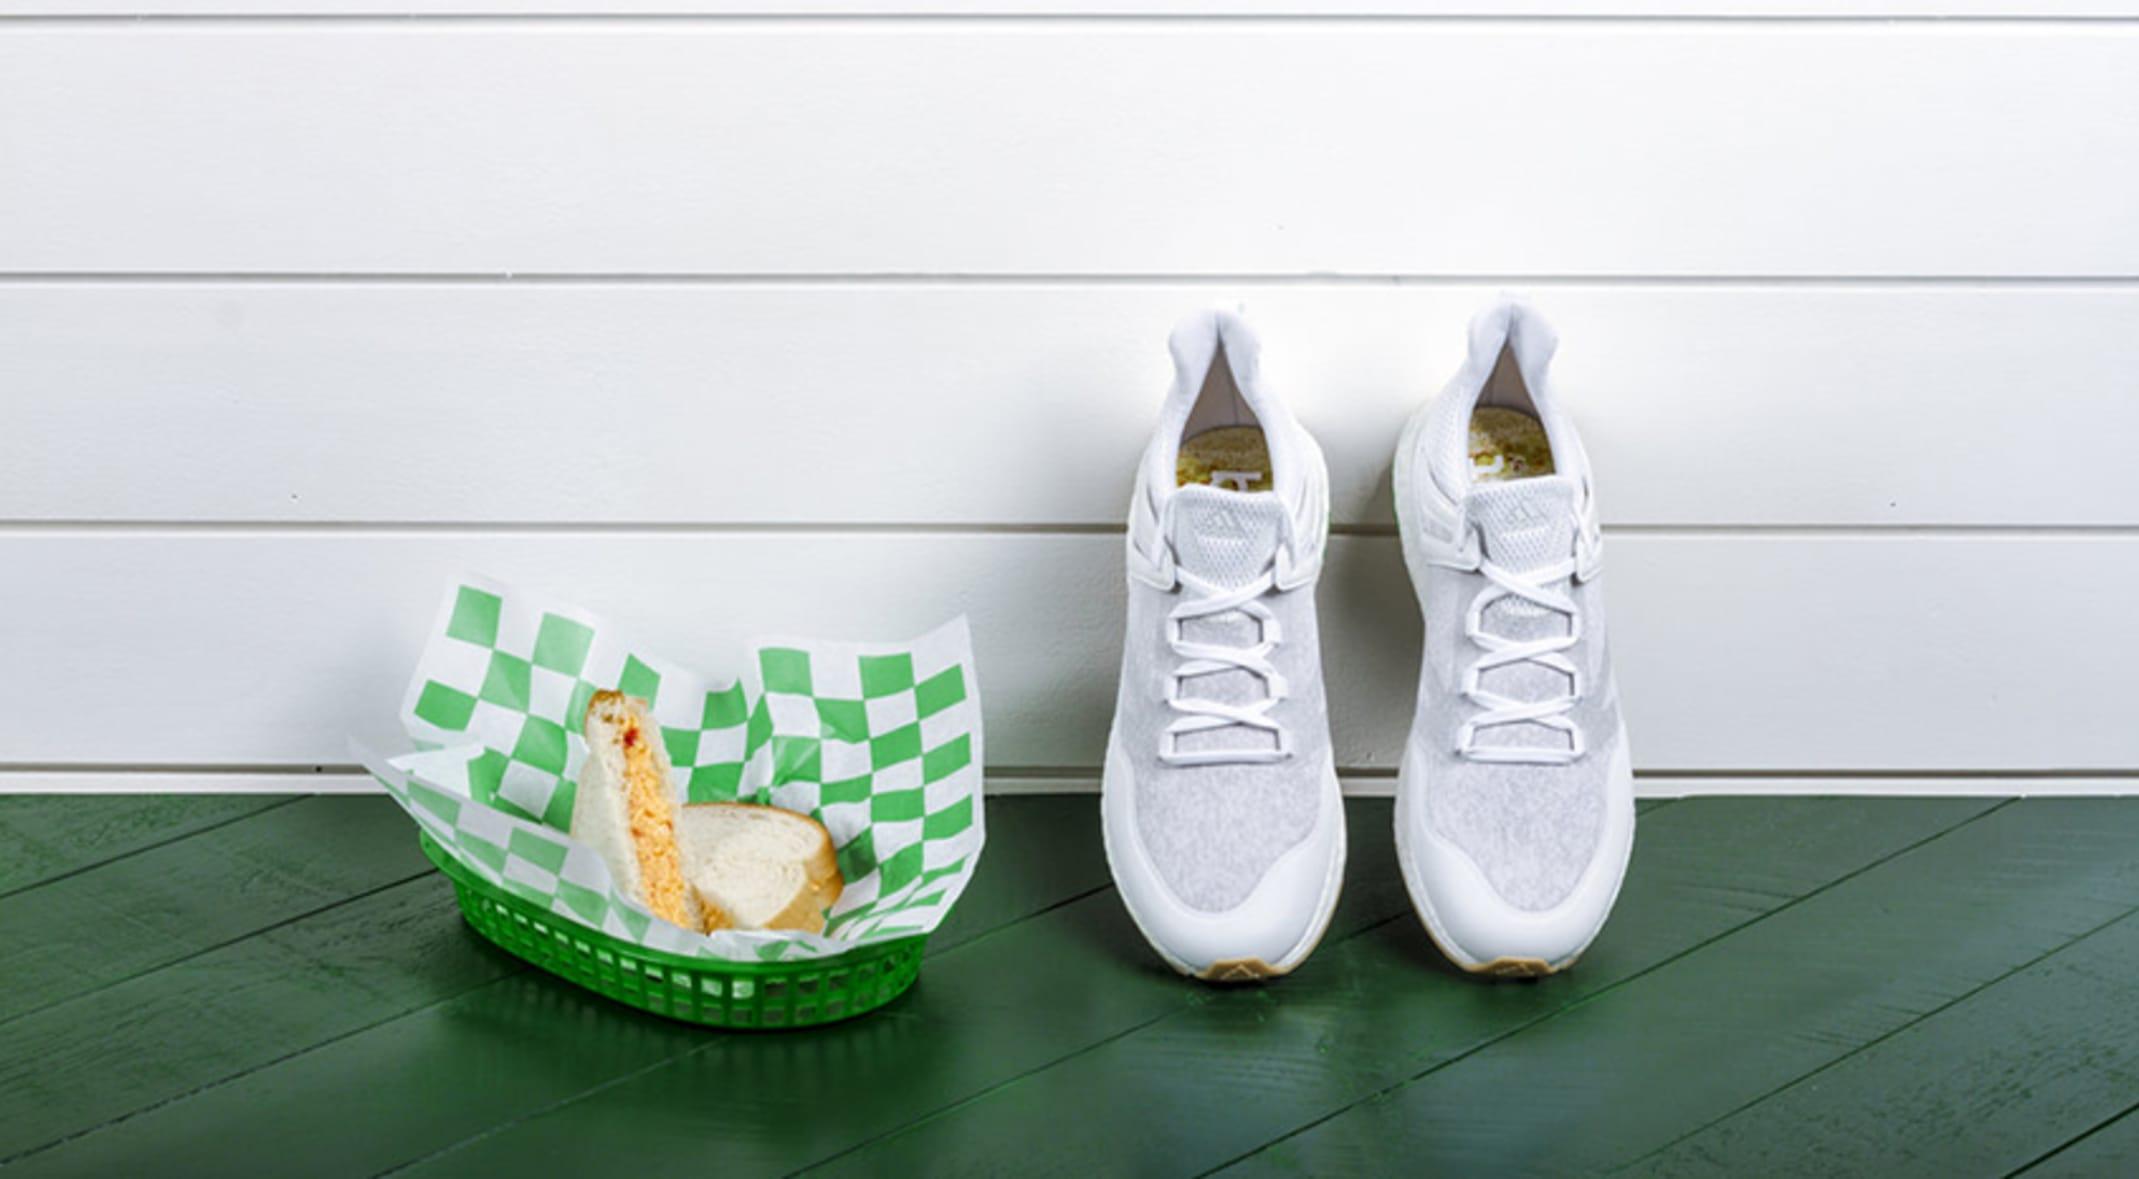 Limited edition shoe from adidas Golf is pimento cheese